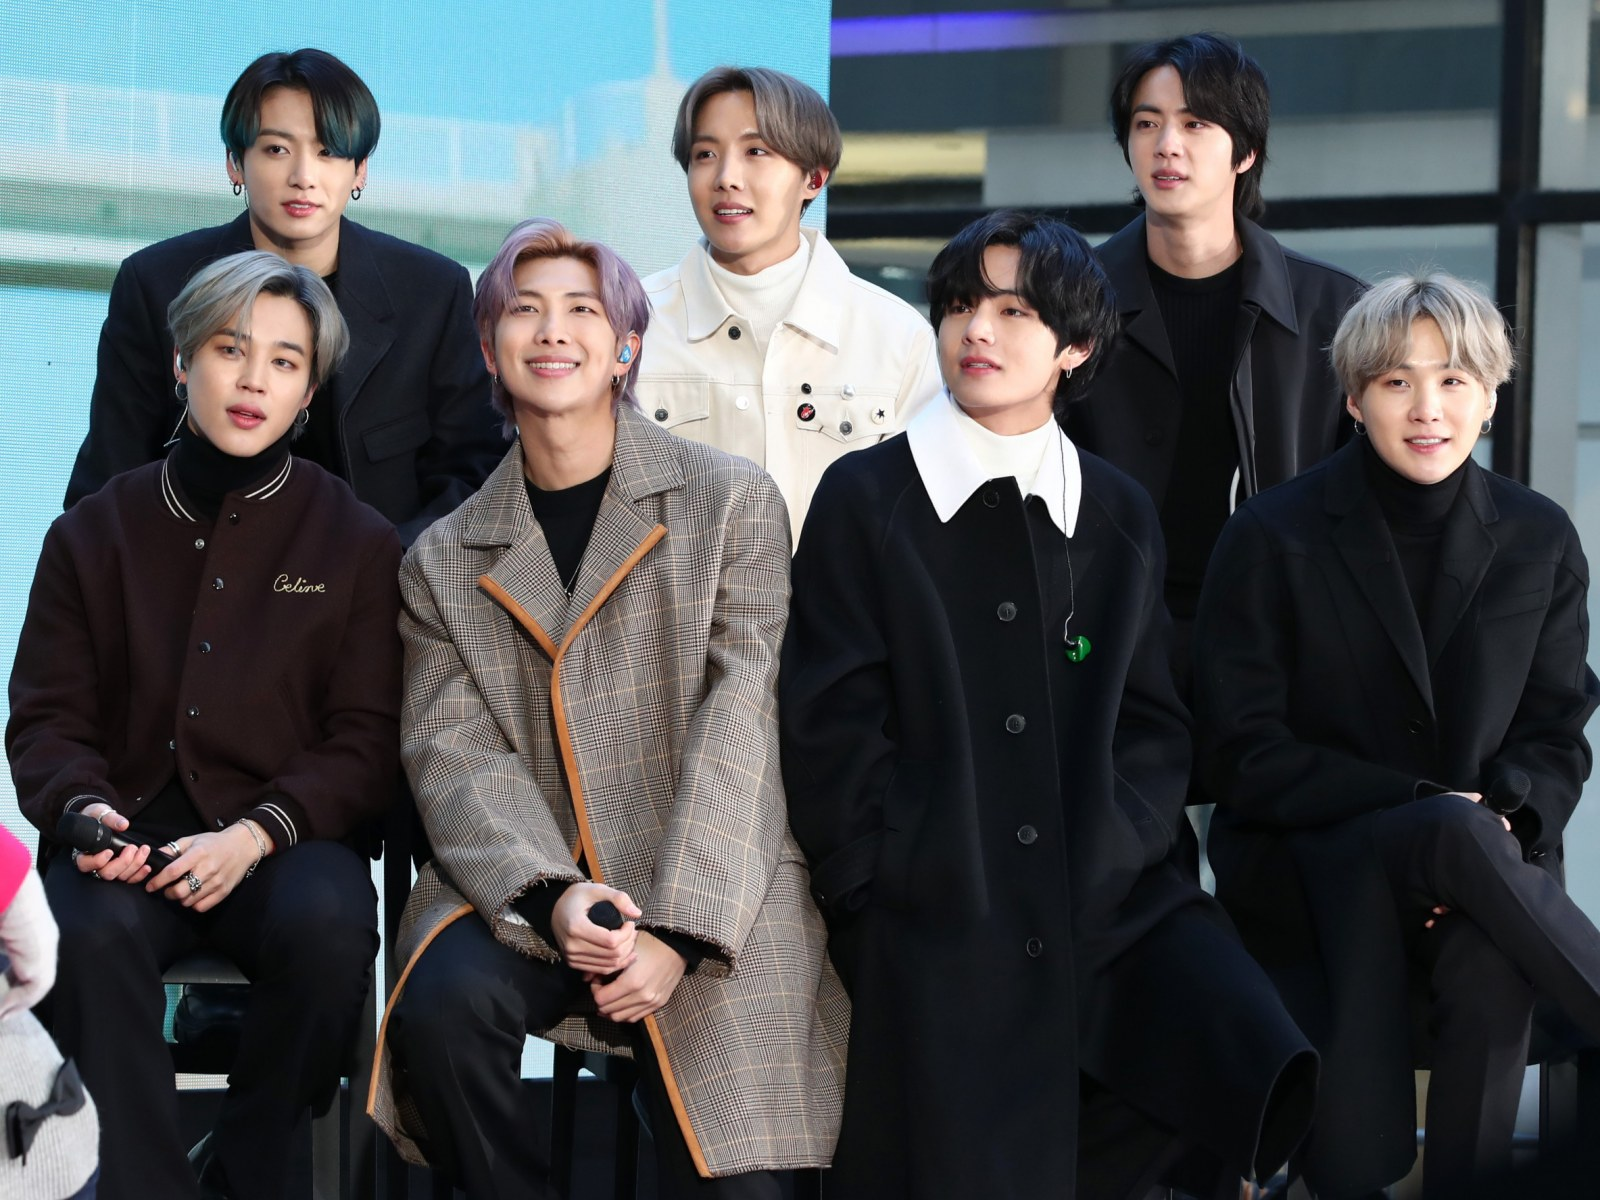 bts rockefeller plaza february 21 2020 new york city